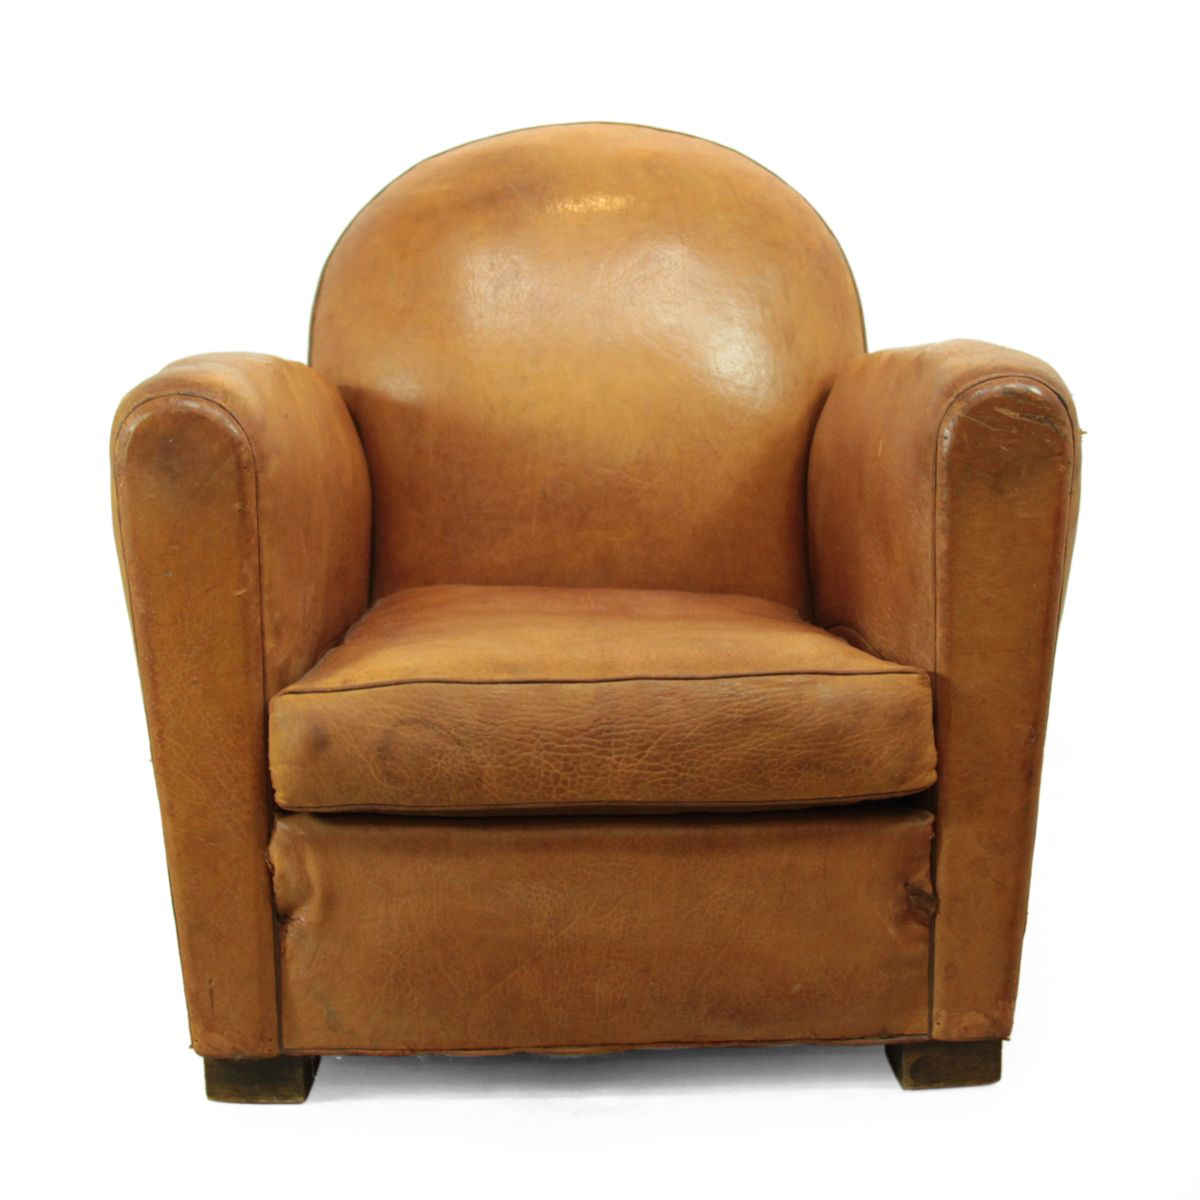 Leather Club Chair Vintage French Brown Leather Club Chair 1930s For Sale At